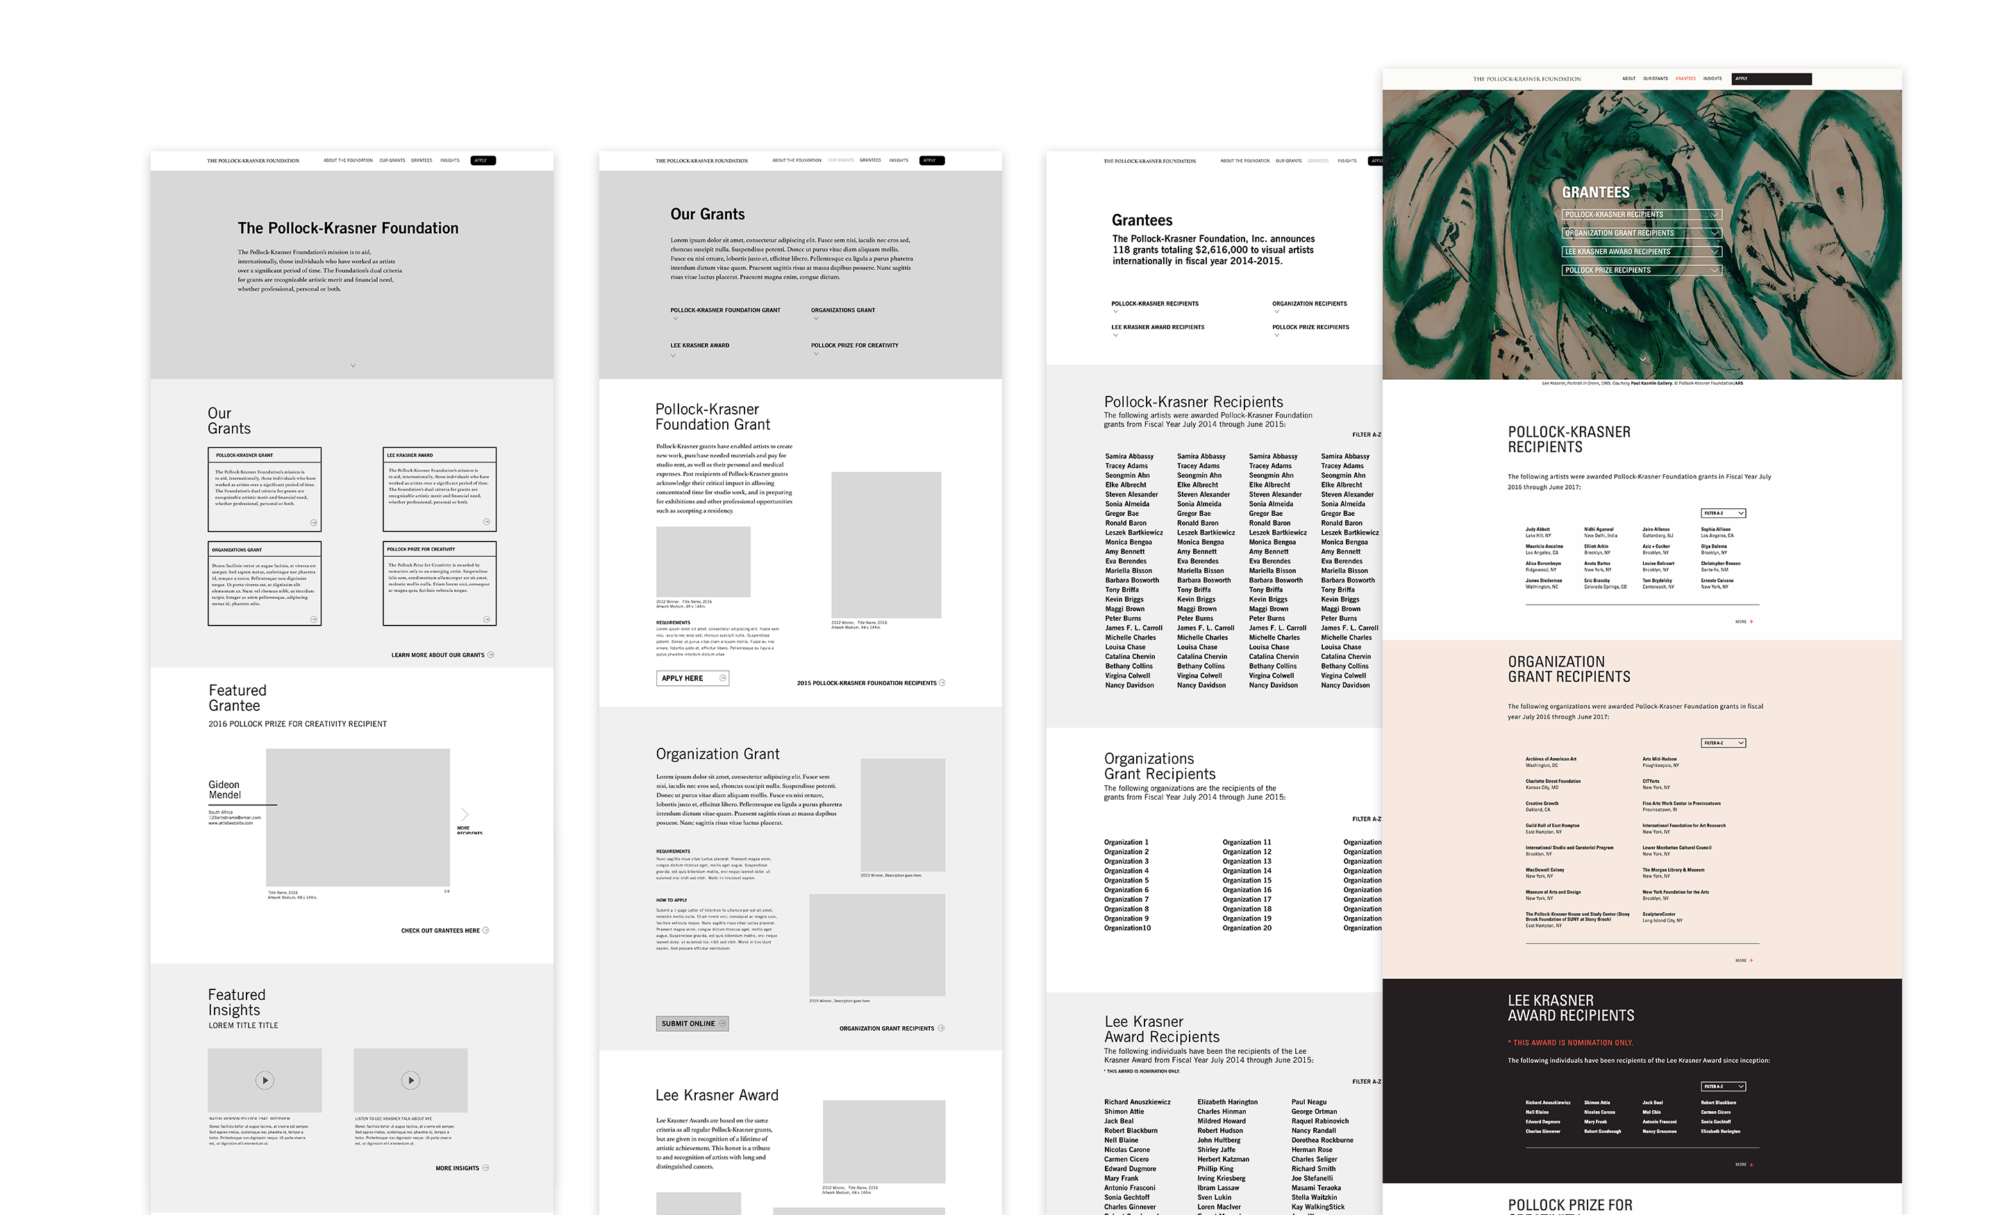 Wireframes and final page design to show translation of user-experience and visual design. Wireframes include the Homepage, Our Grants page, and the Grantees list